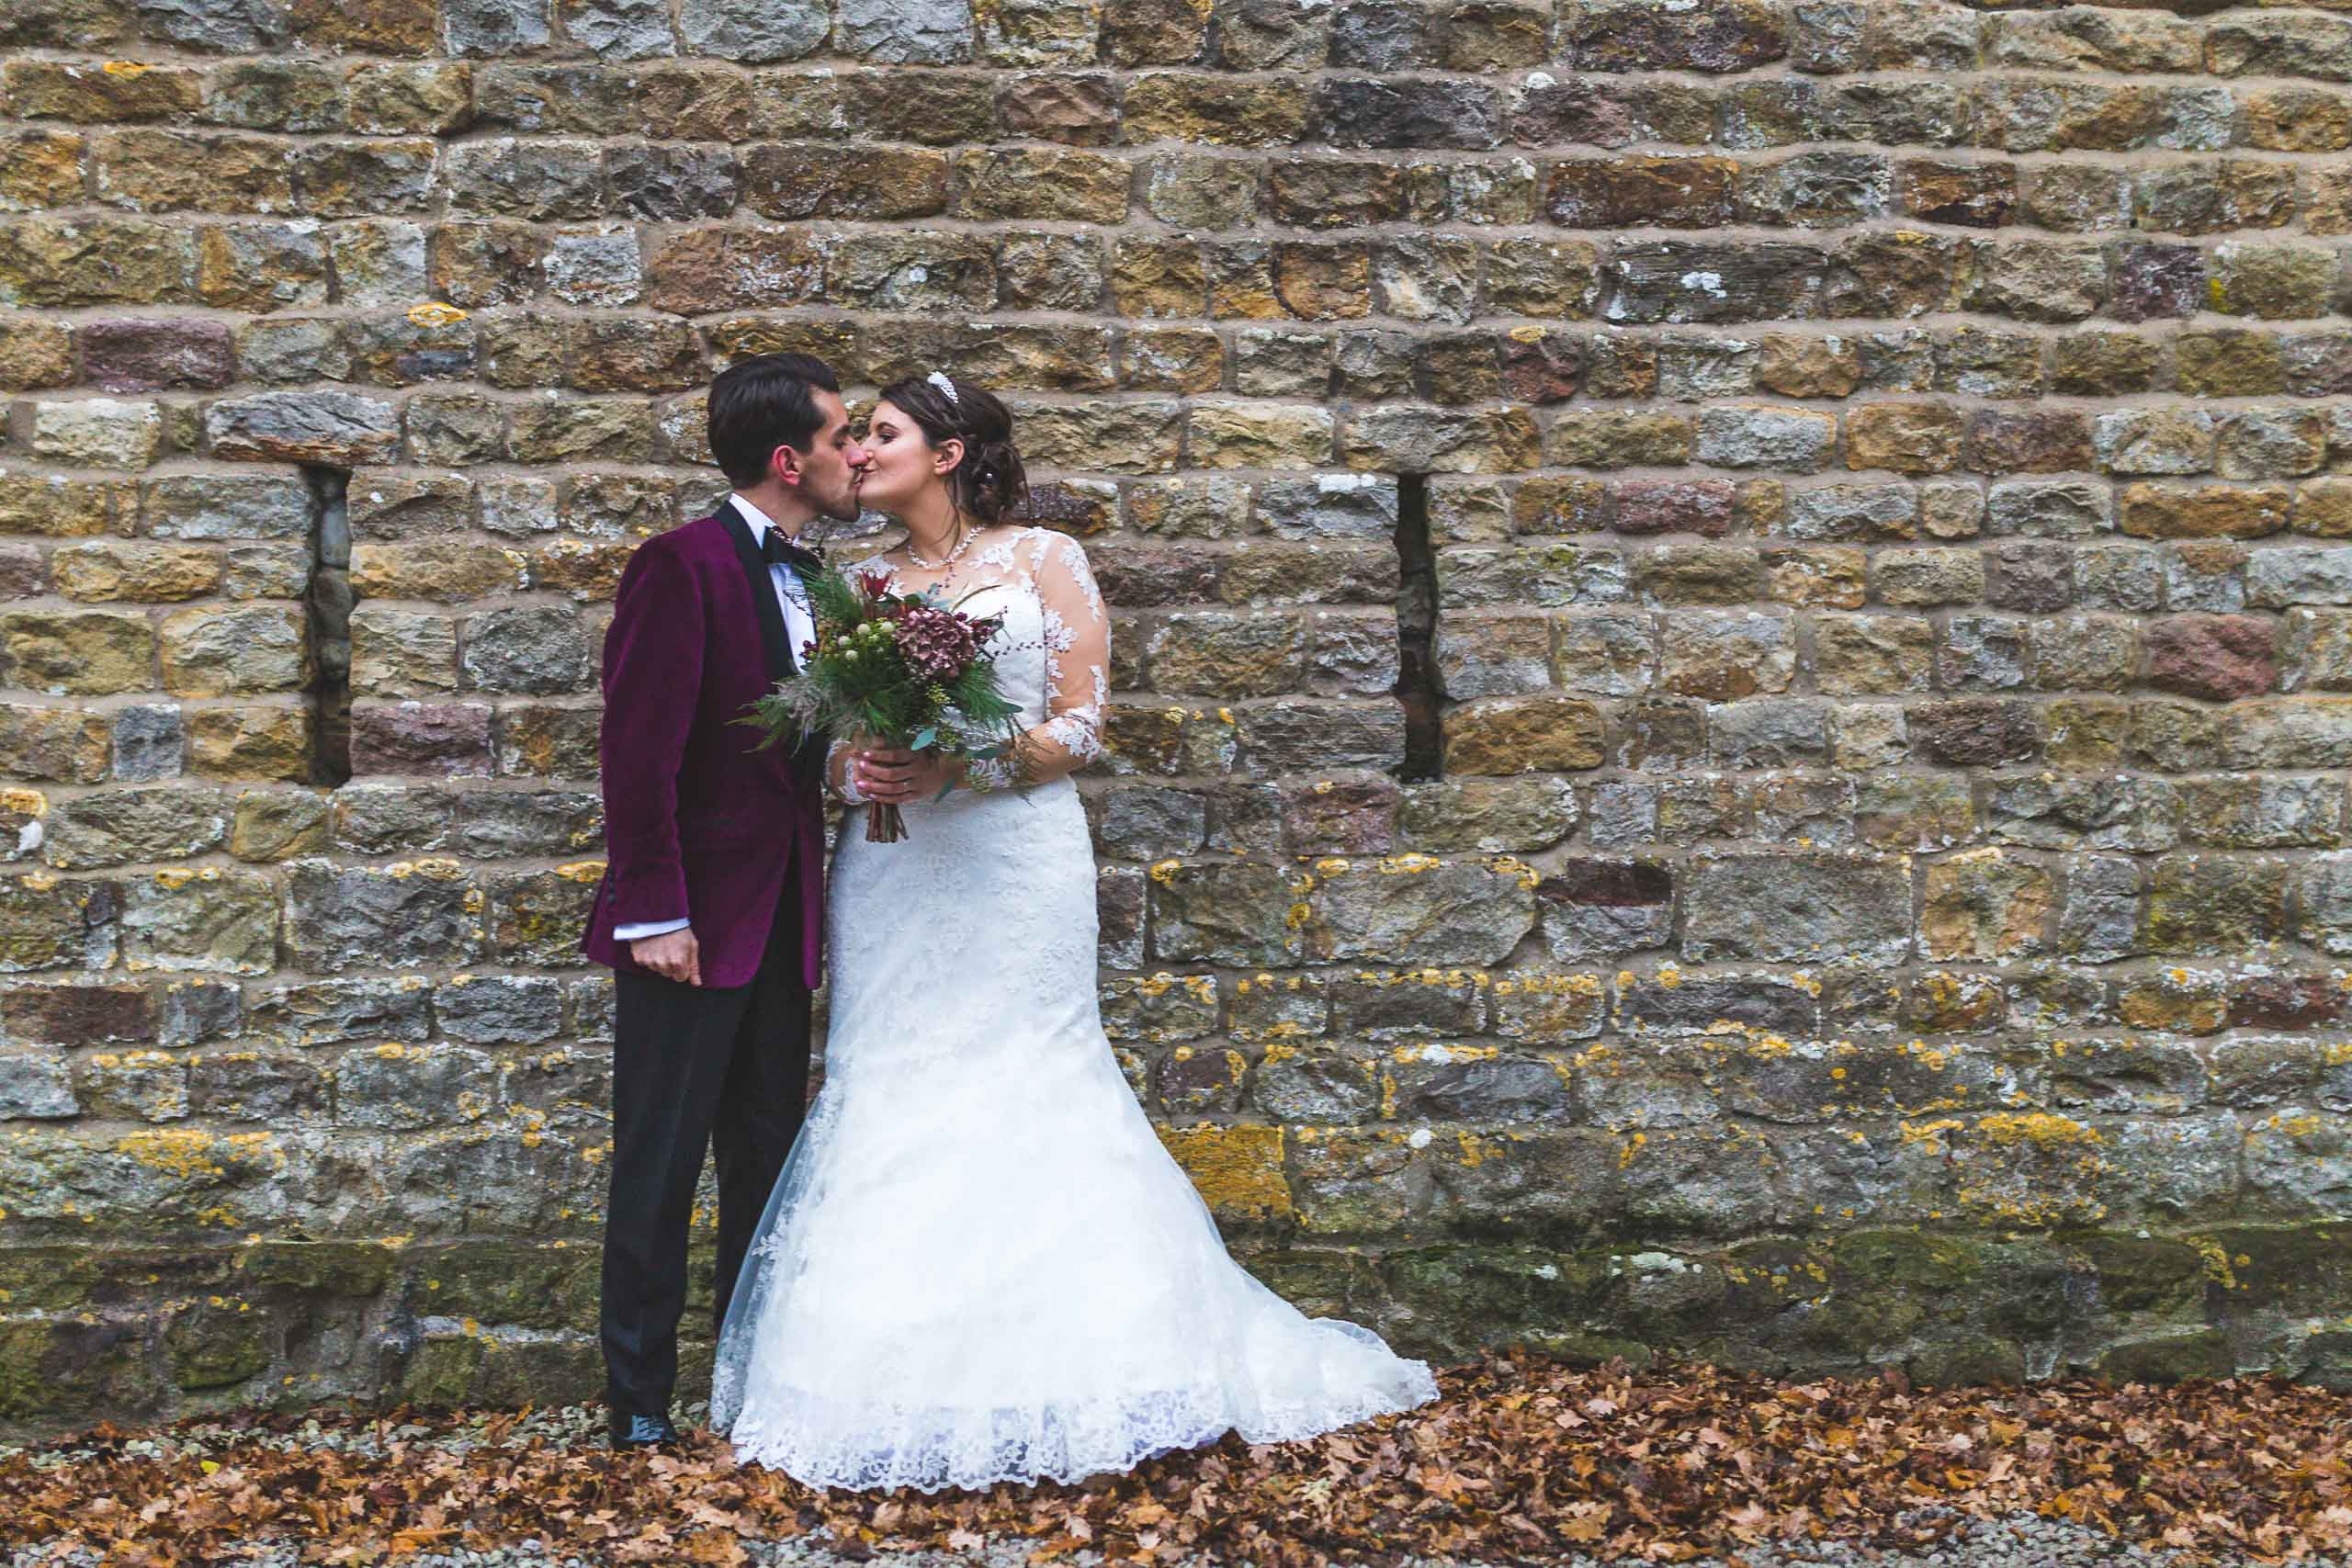 Newlyweds kiss while stood in front of a stone wall